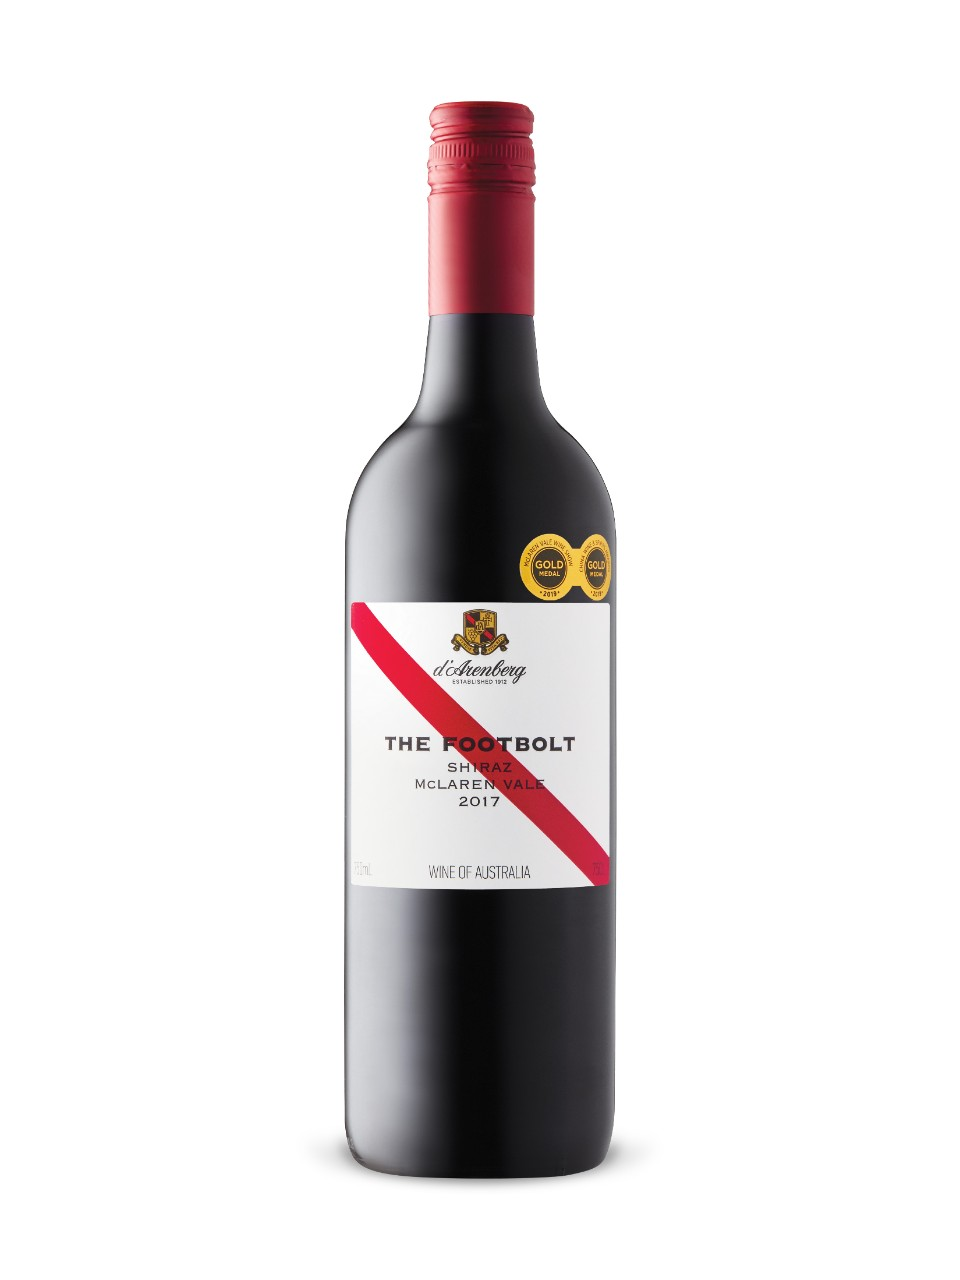 d'Arenberg The Footbolt Shiraz 2017 from LCBO